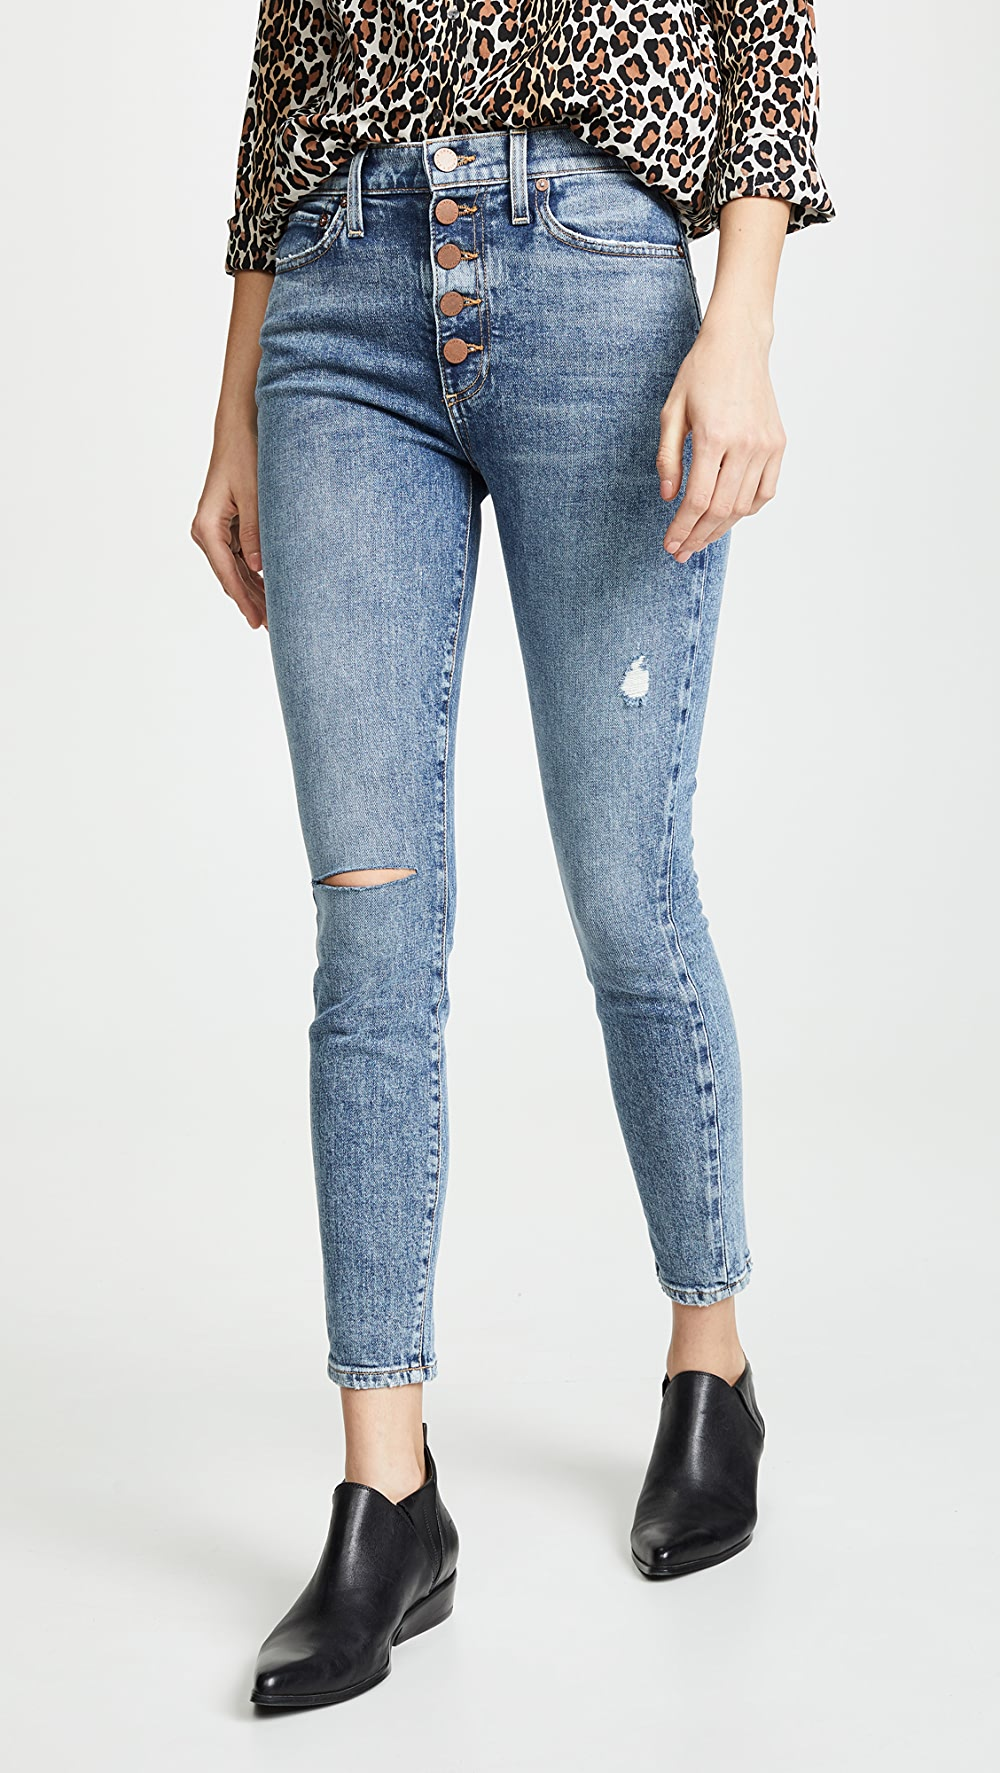 Responsible Alice + Olivia Jeans - Good High Rise Exposed Button Jeans Dependable Performance